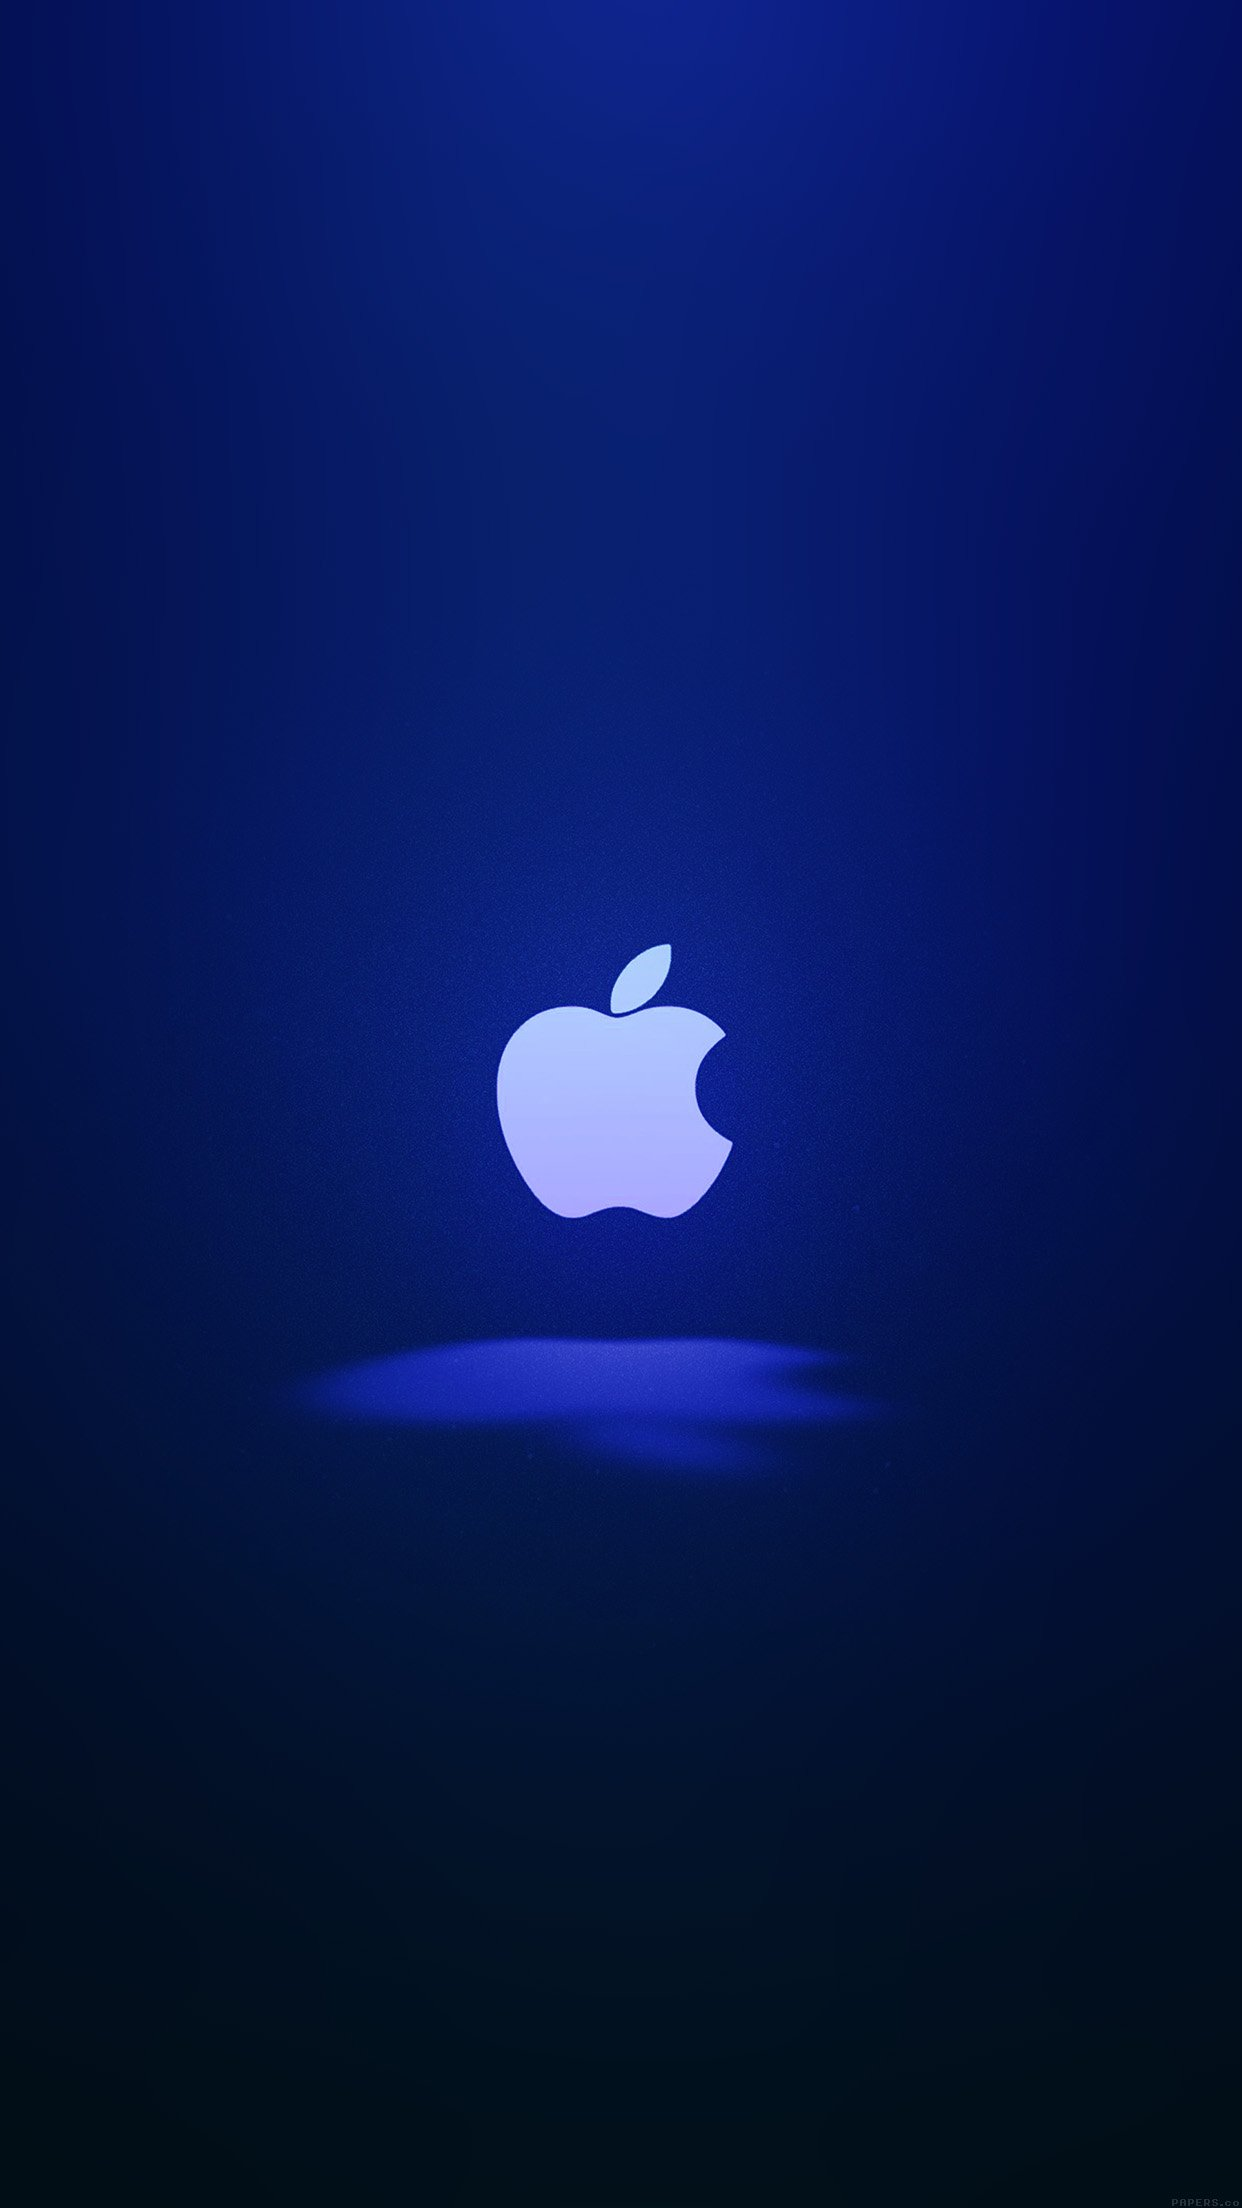 Apple Logo Love Mania Blue Android wallpaper